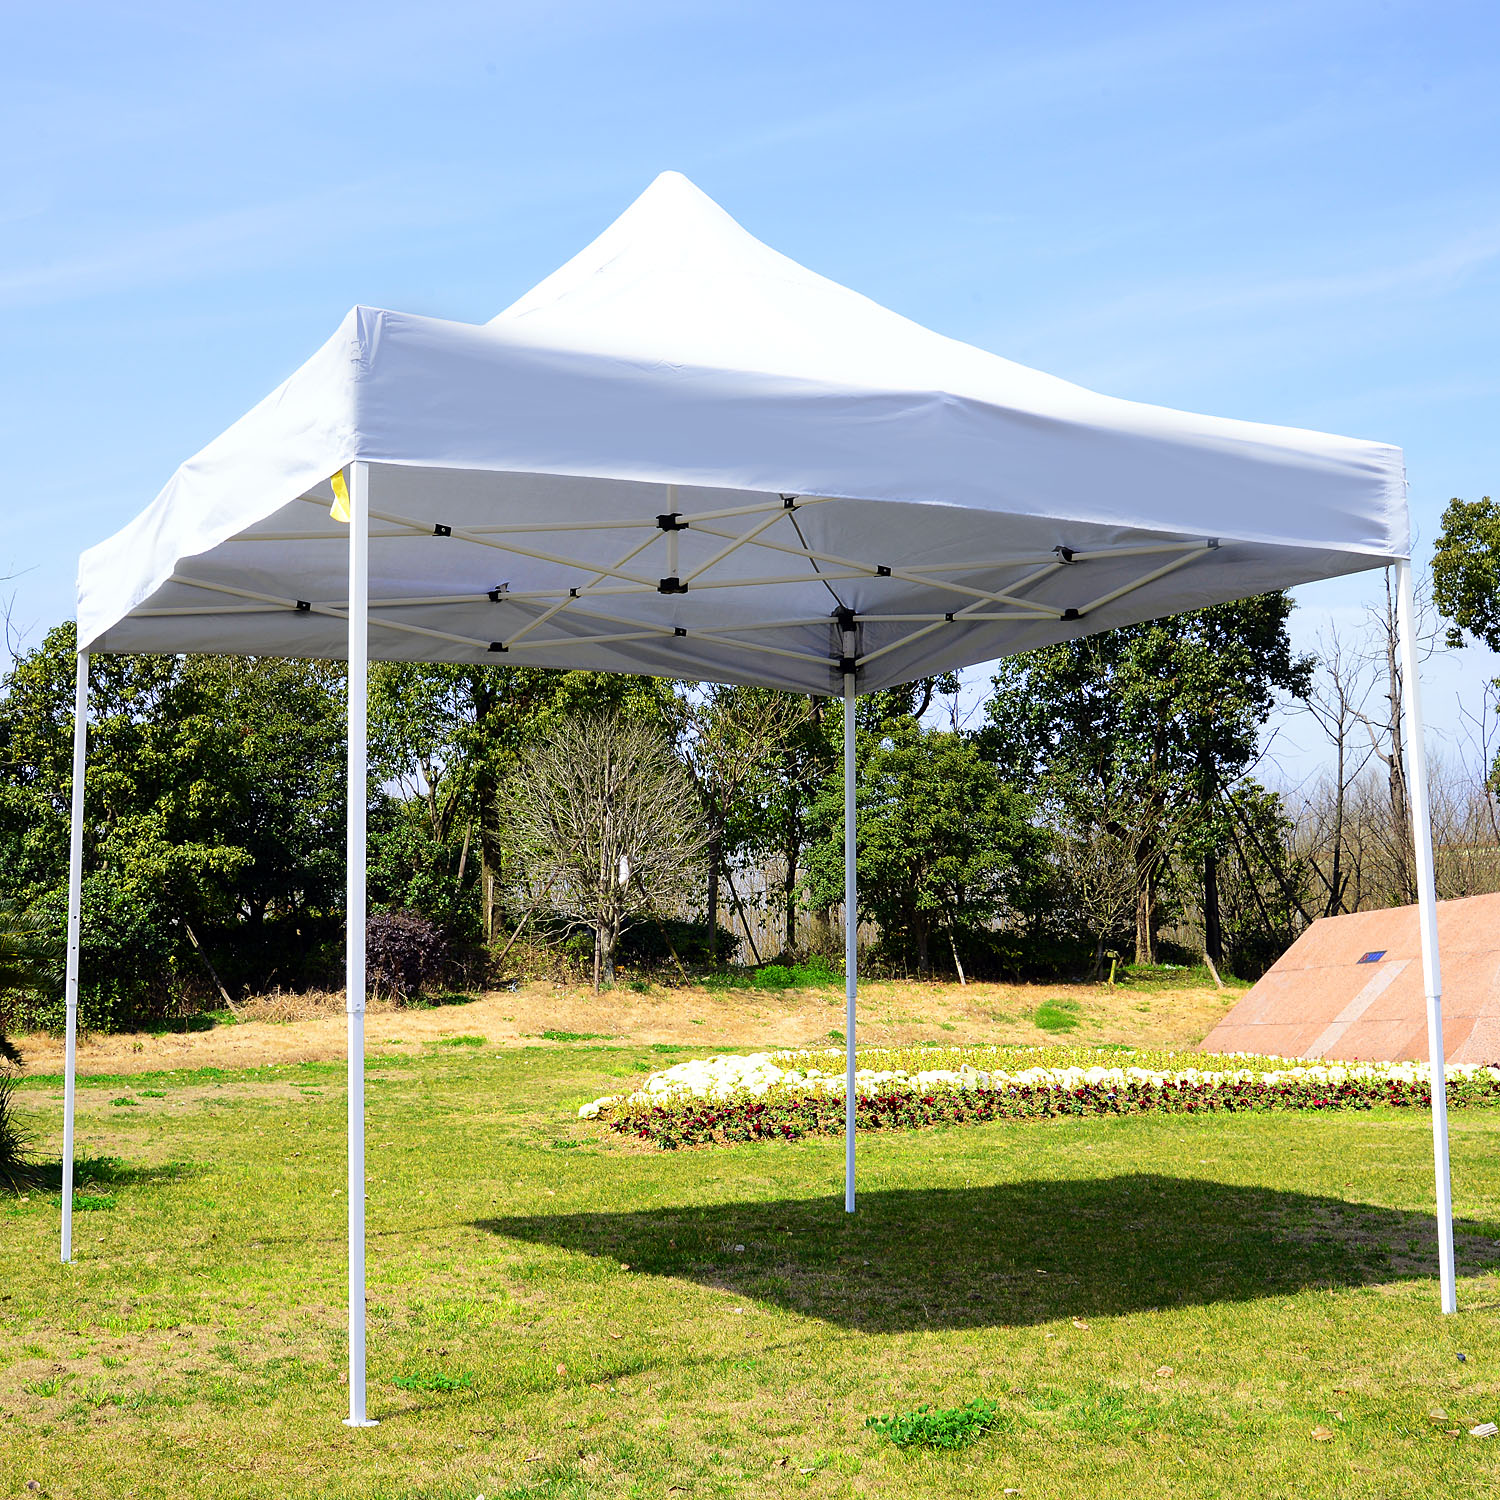 Image of CAD $89.99 Outsunny 9.7x9.7ft Pop Up Tent Instant Outdoor Shelter Foldable Portable Sunshade with Carrying Bag / CLEARANCE Canopy Party Wedding w/ Canada 95509799630